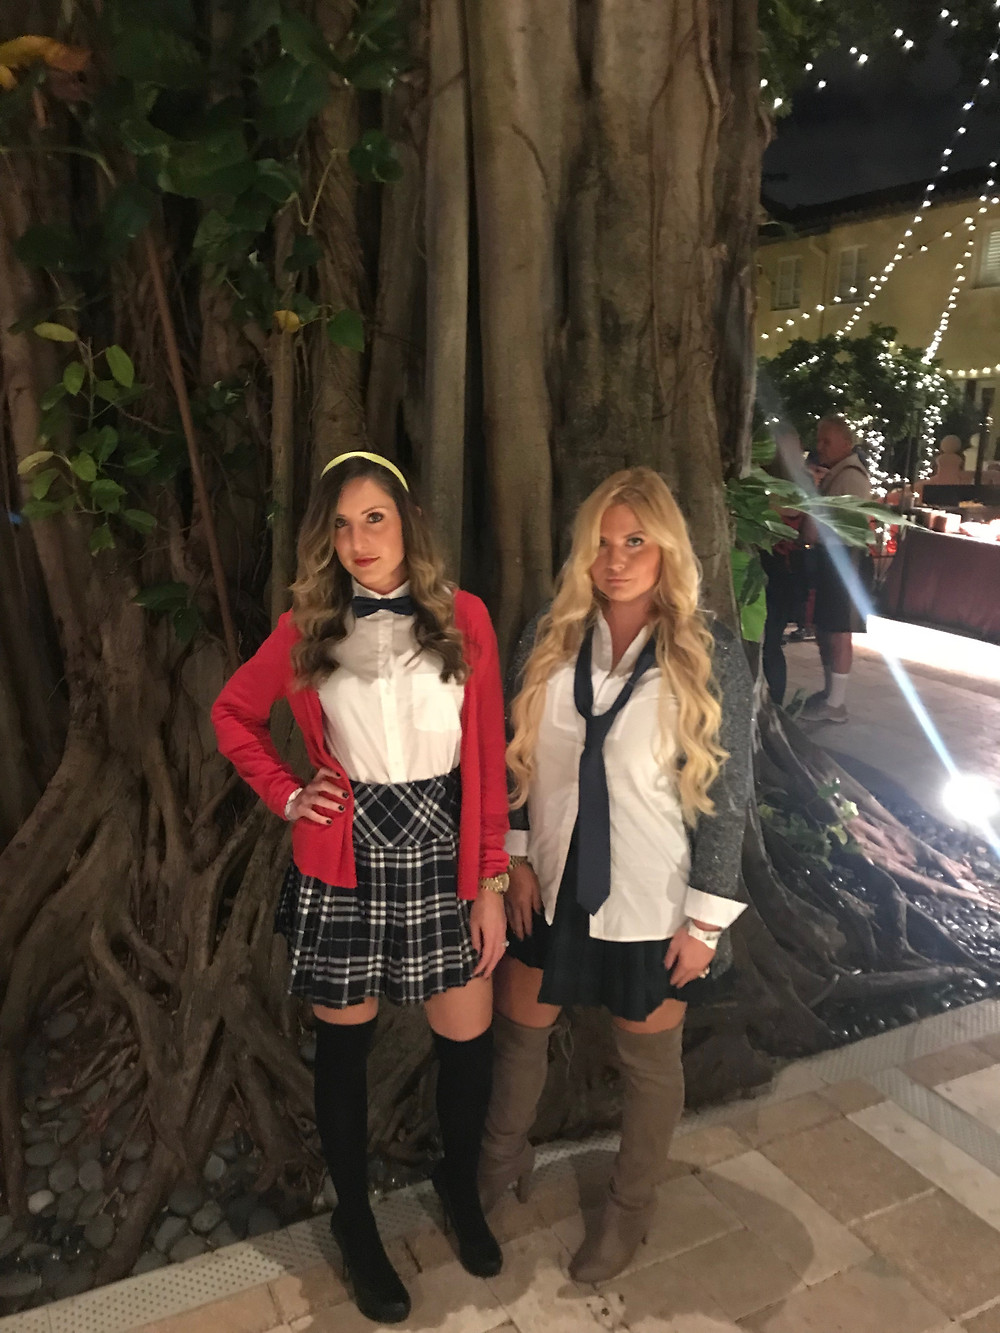 Lindsey Swing & Lilly Robbins as Blair Waldorf & Serena Vanderwoodsen from Gossip Girl